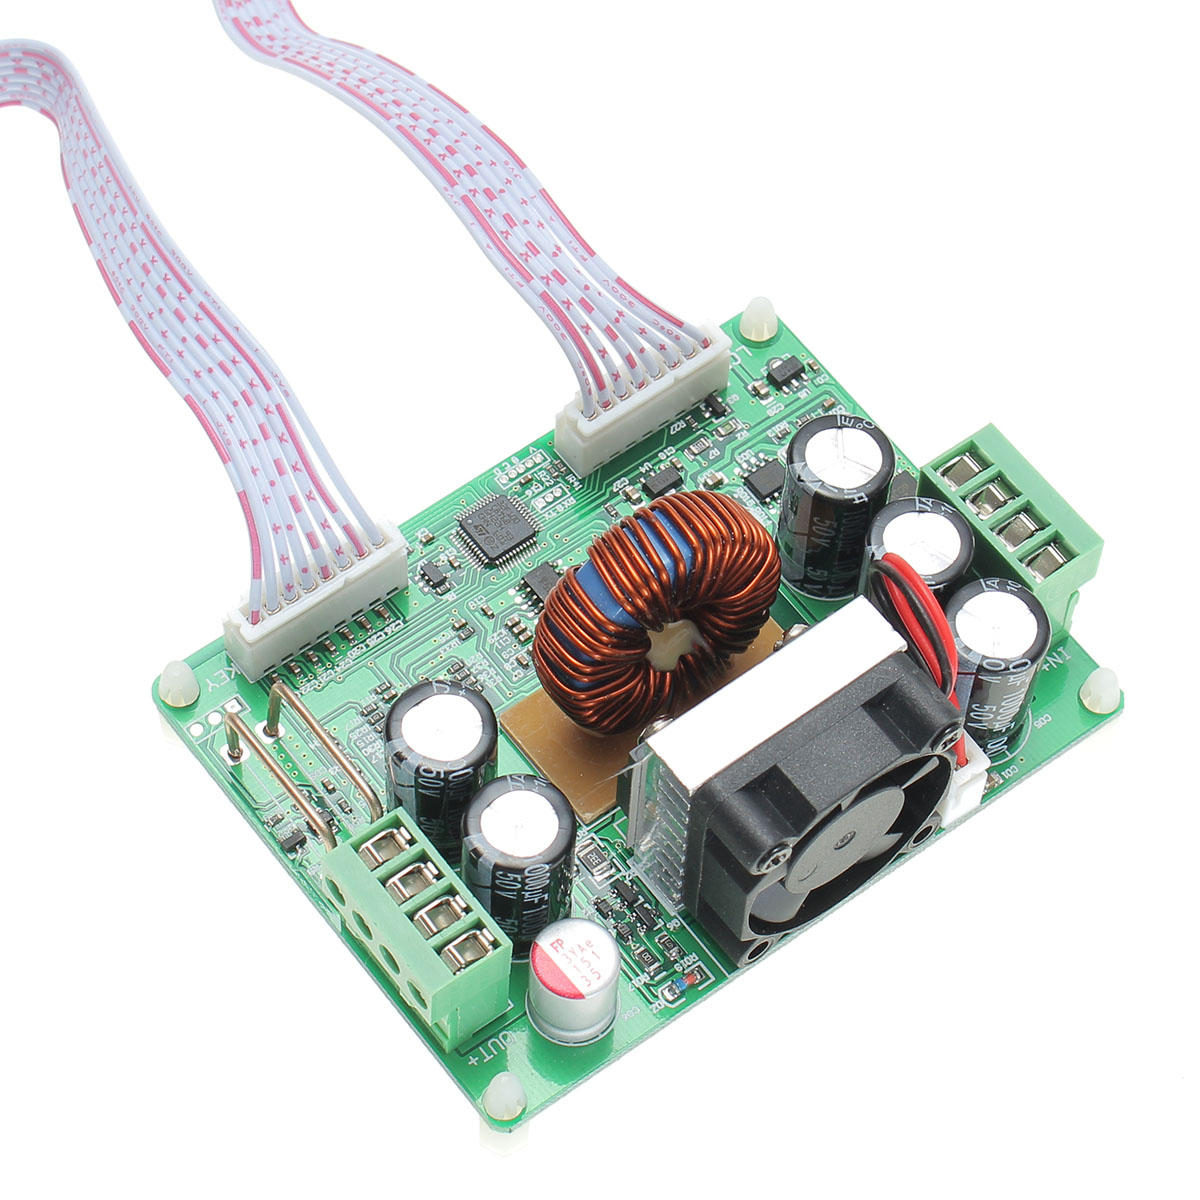 20pcs LM7809 DC/AC 12-24V to 9V DC Output Three Terminal Voltage Regulator Power Supply Step Down Module 1.2A - 4